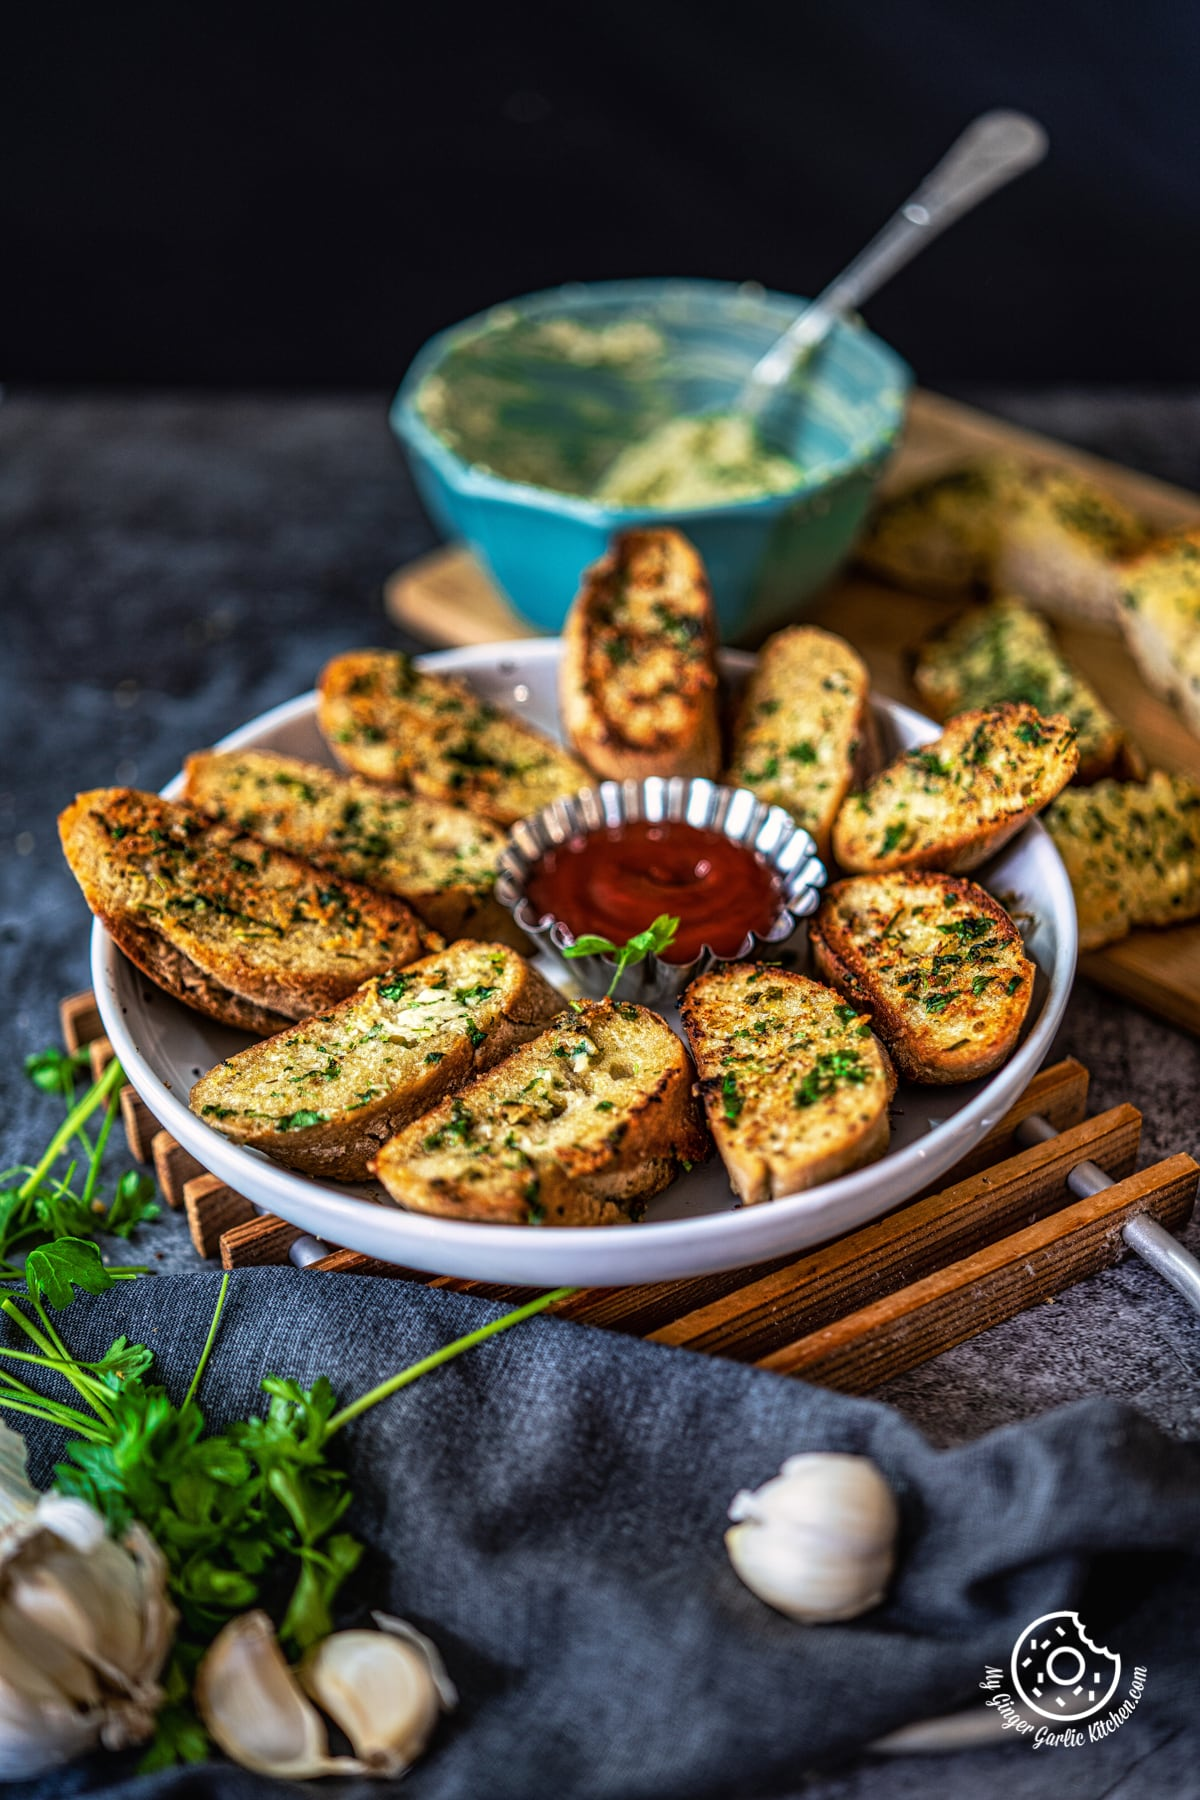 garlic bread in white plate along with a ketchup bowl